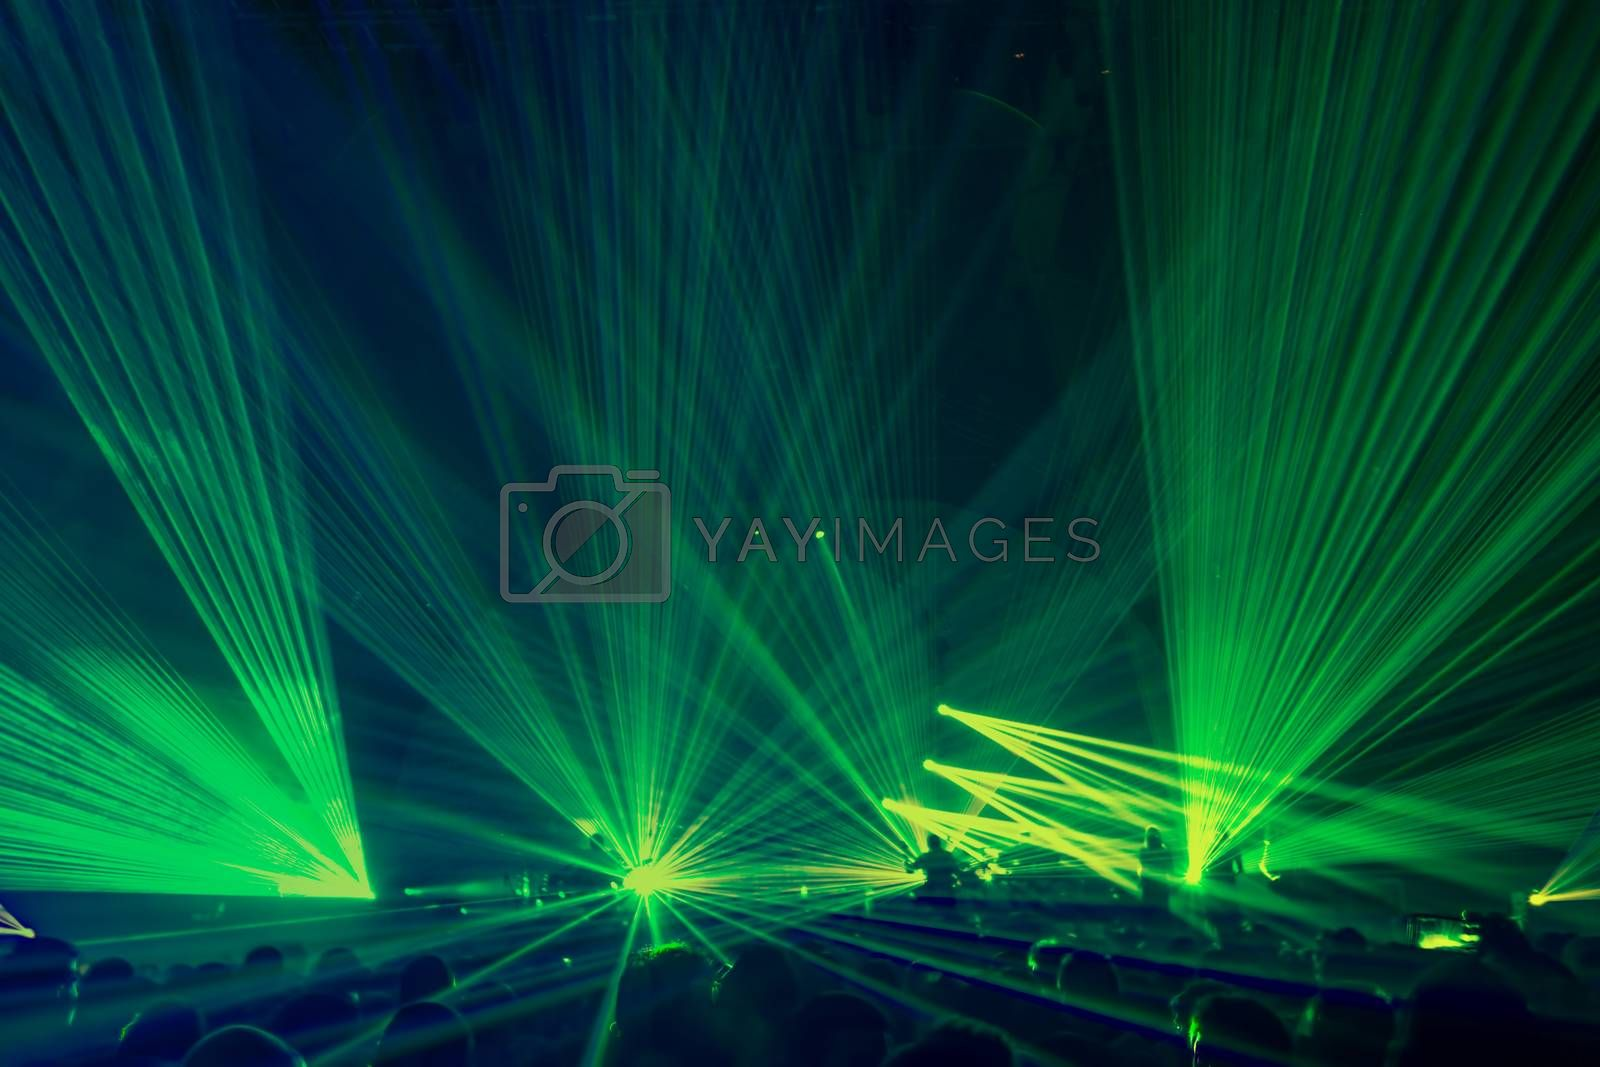 People on the party enjoying concert, dancing in the night club, celebrating new year eve, bright green laser light background